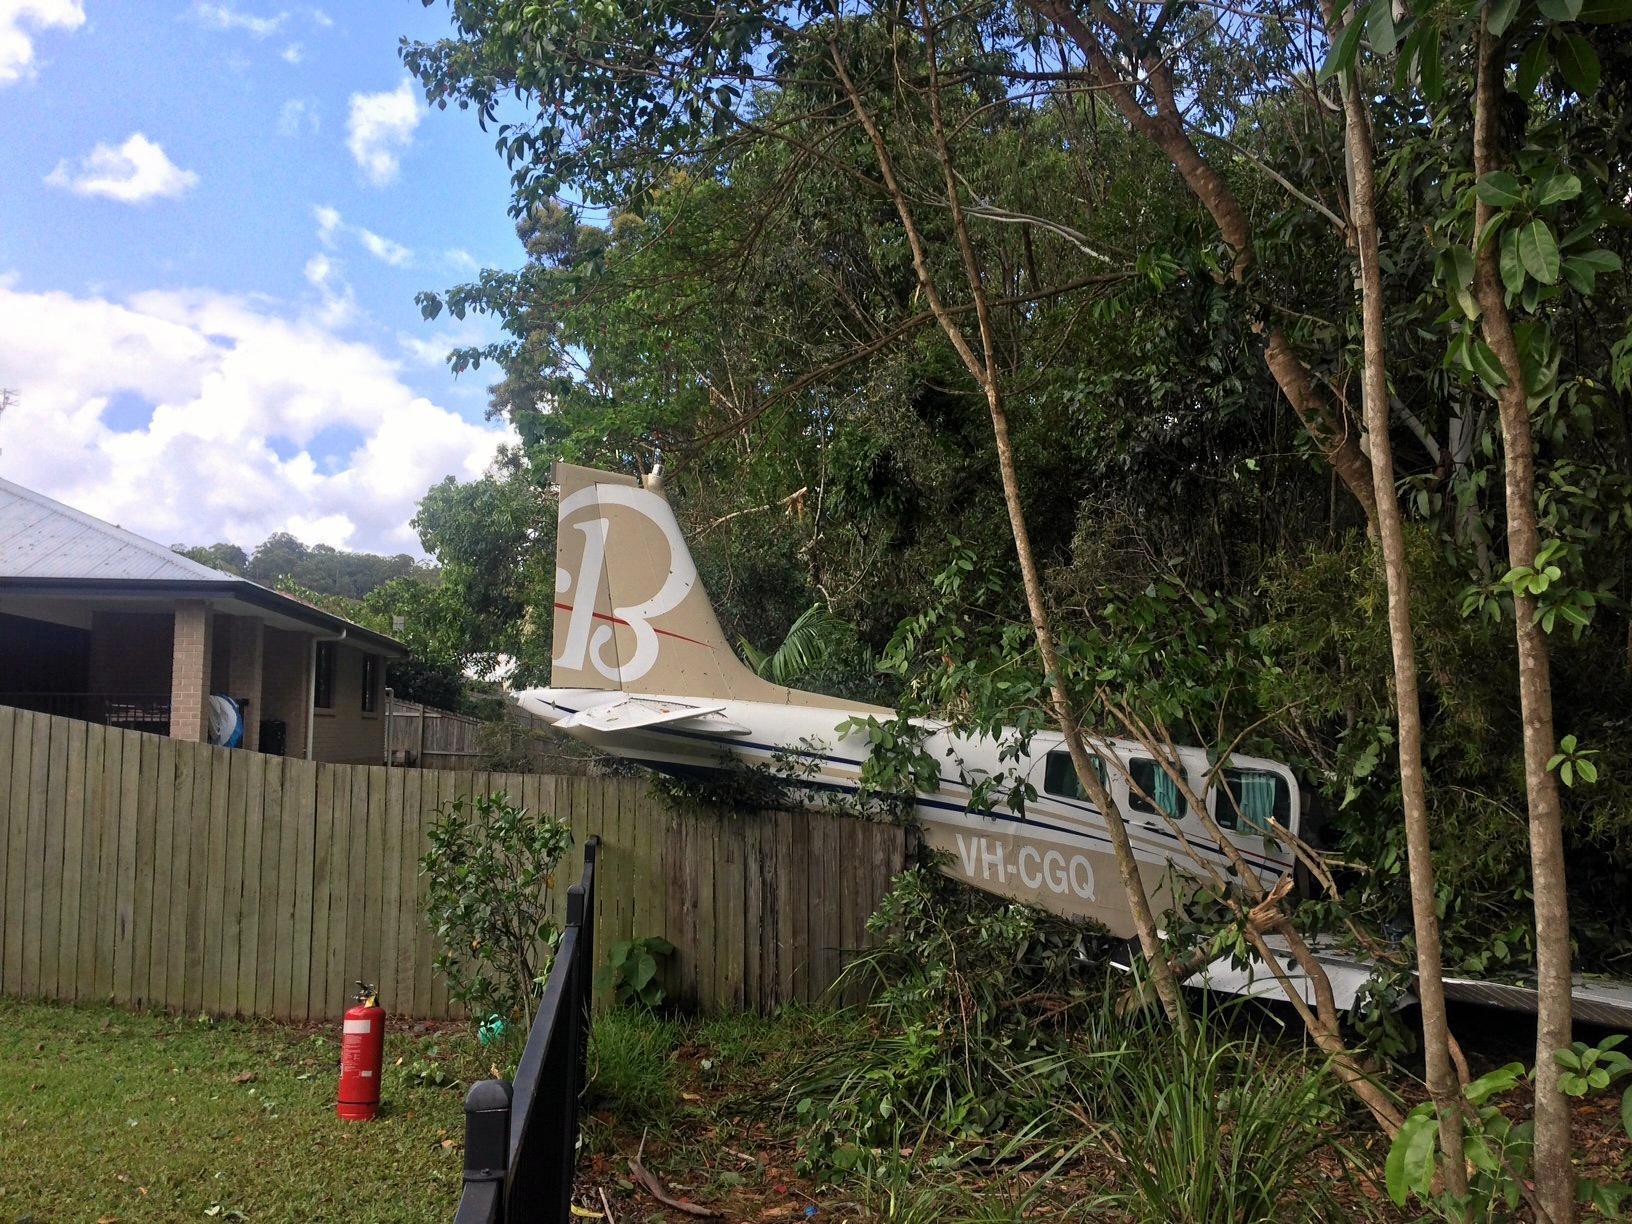 The pilot was forced to make an emergency landing into a private property, crashing through a fence and into trees.